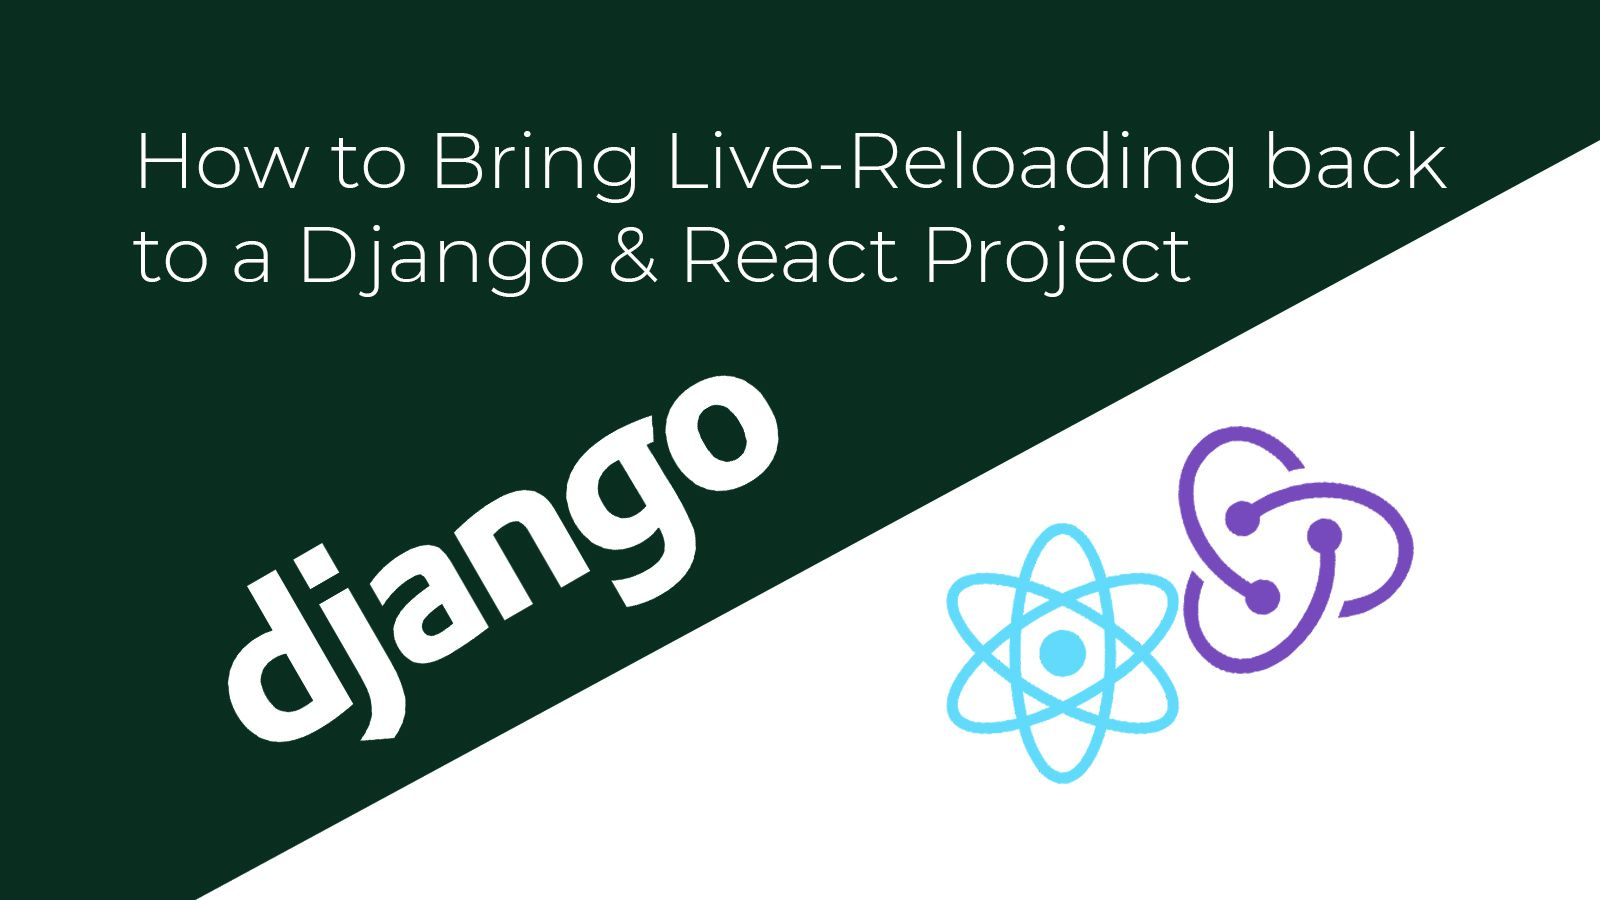 /how-to-bring-live-reloading-back-to-a-django-and-react-project-ilf3ubm feature image